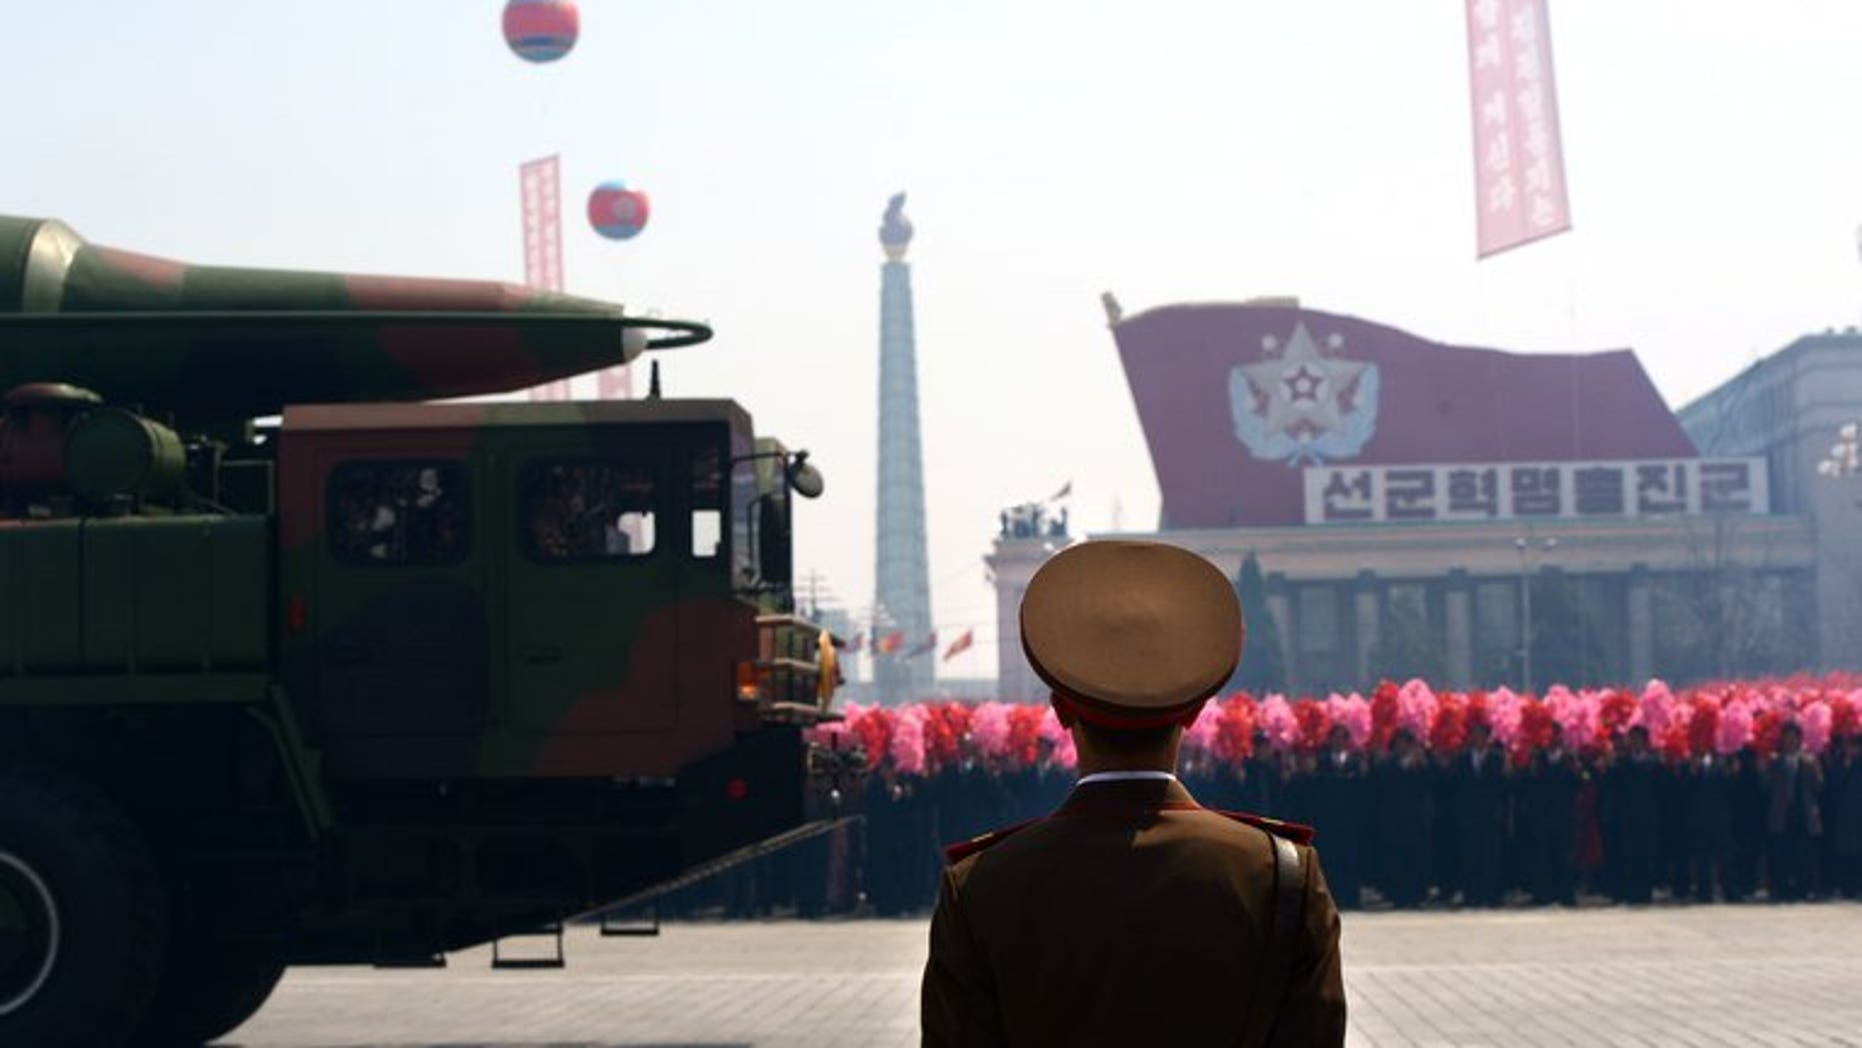 A Taepodong class missile is displayed during a military parade in Pyongyang on April 15, 2012. North Korea has mobilised a variety of missiles in preparation for a massive military parade later this month to mark the 60th anniversary since the end of the Korean War, a report said Friday.